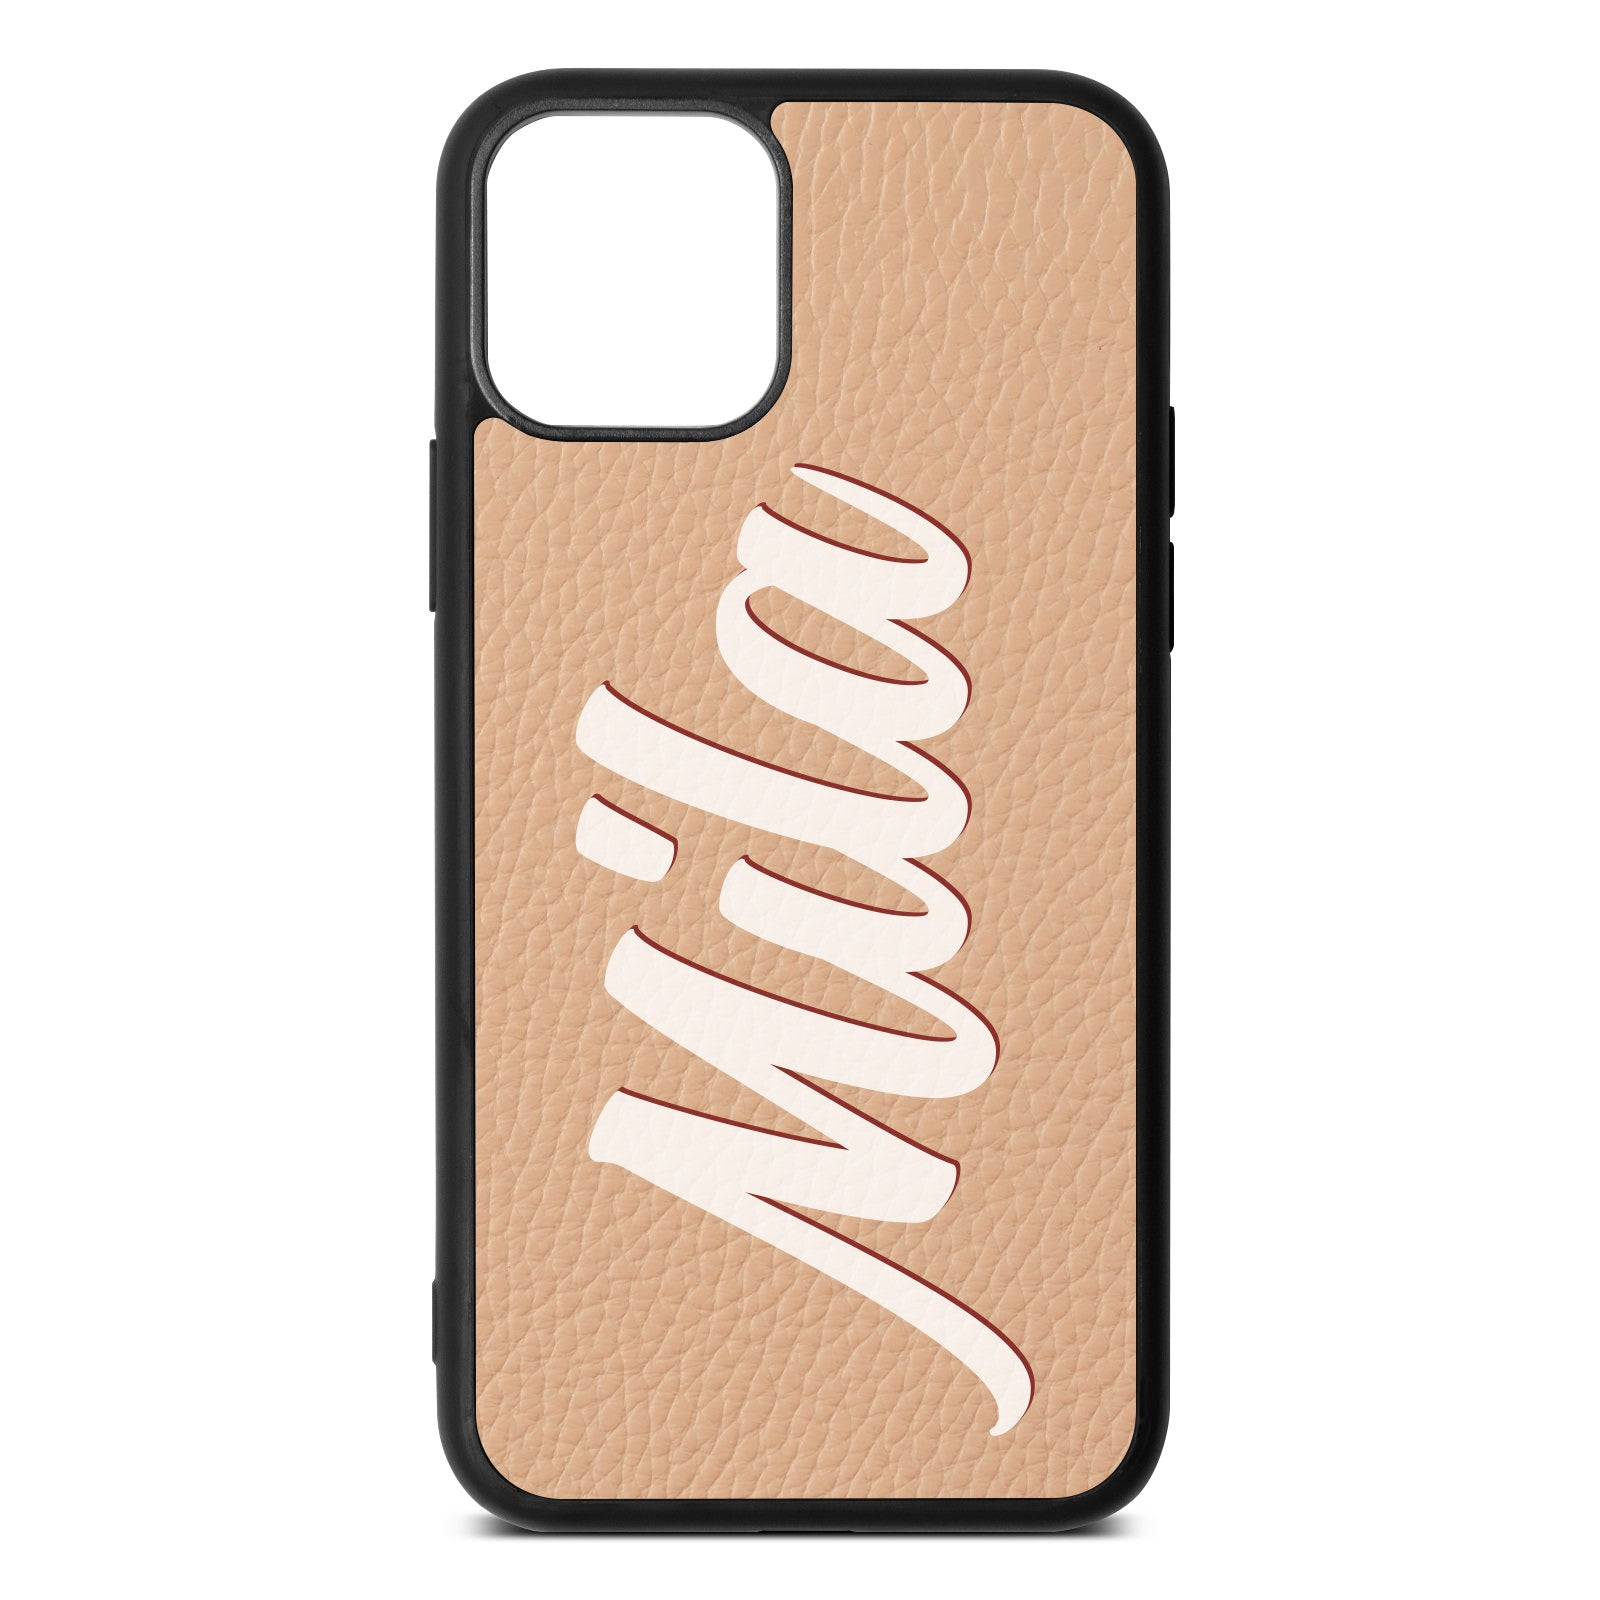 iPhone 11 Nude Pebble Leather Case